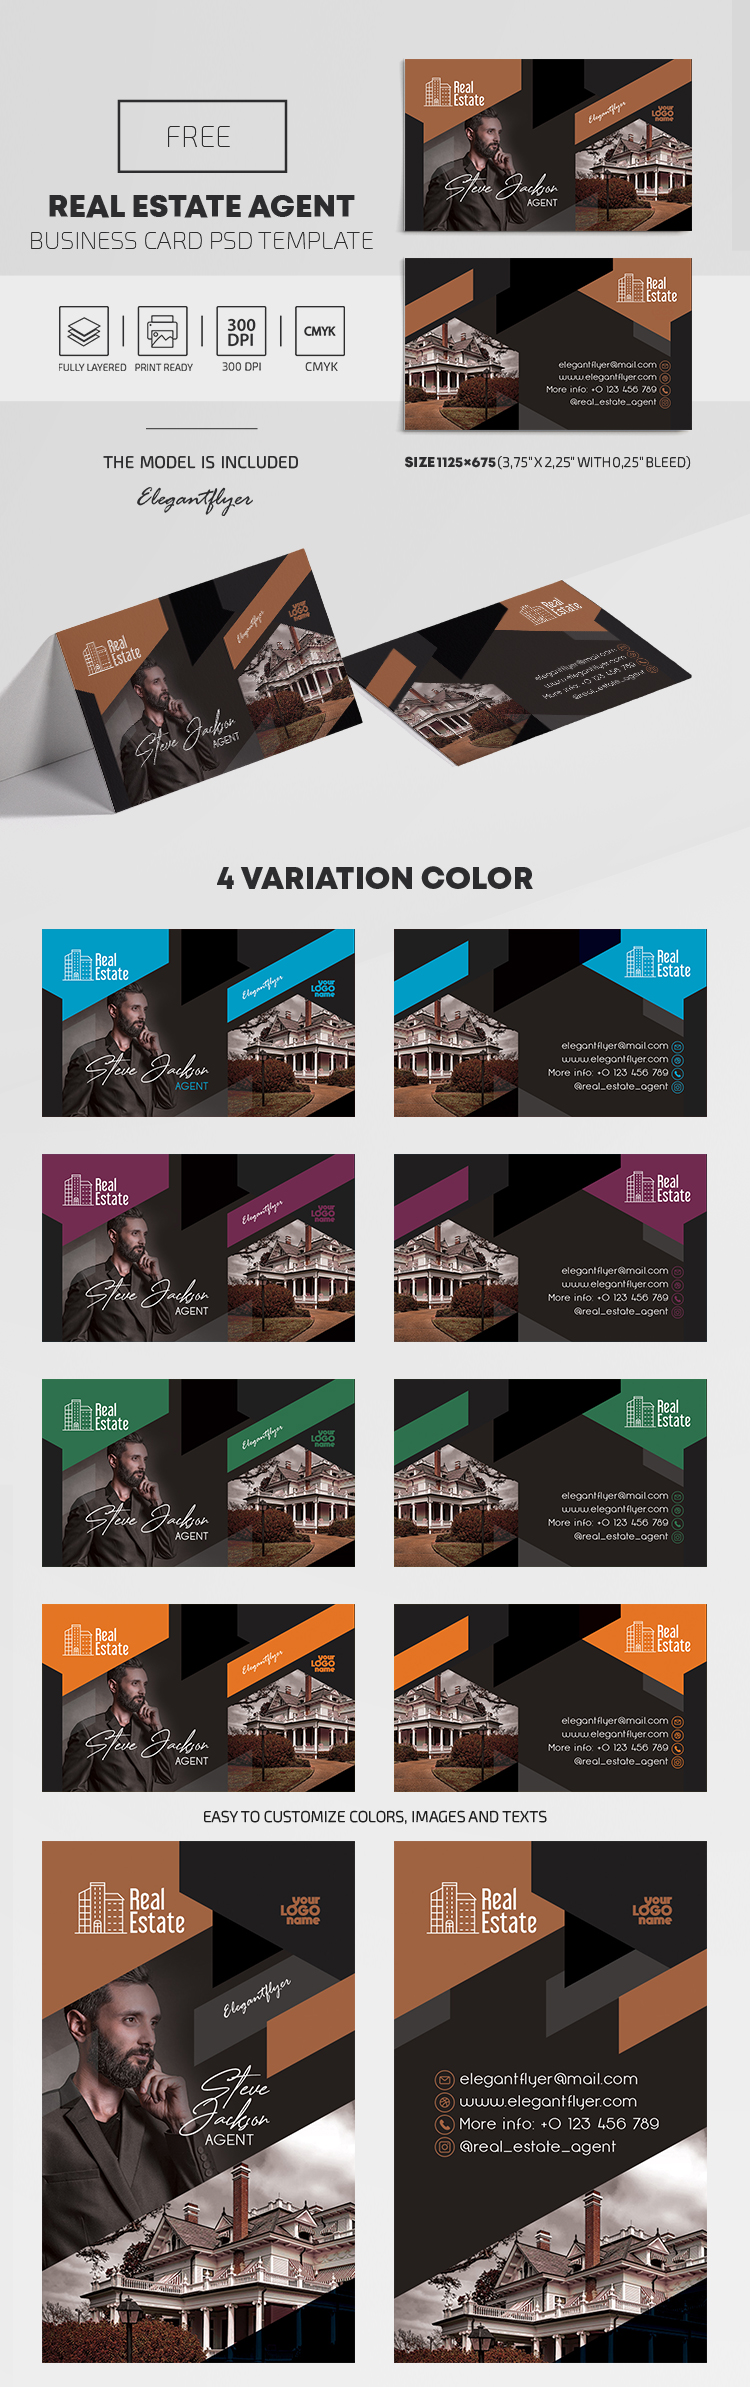 Real Estate Agent – Free PSD Business Card Template